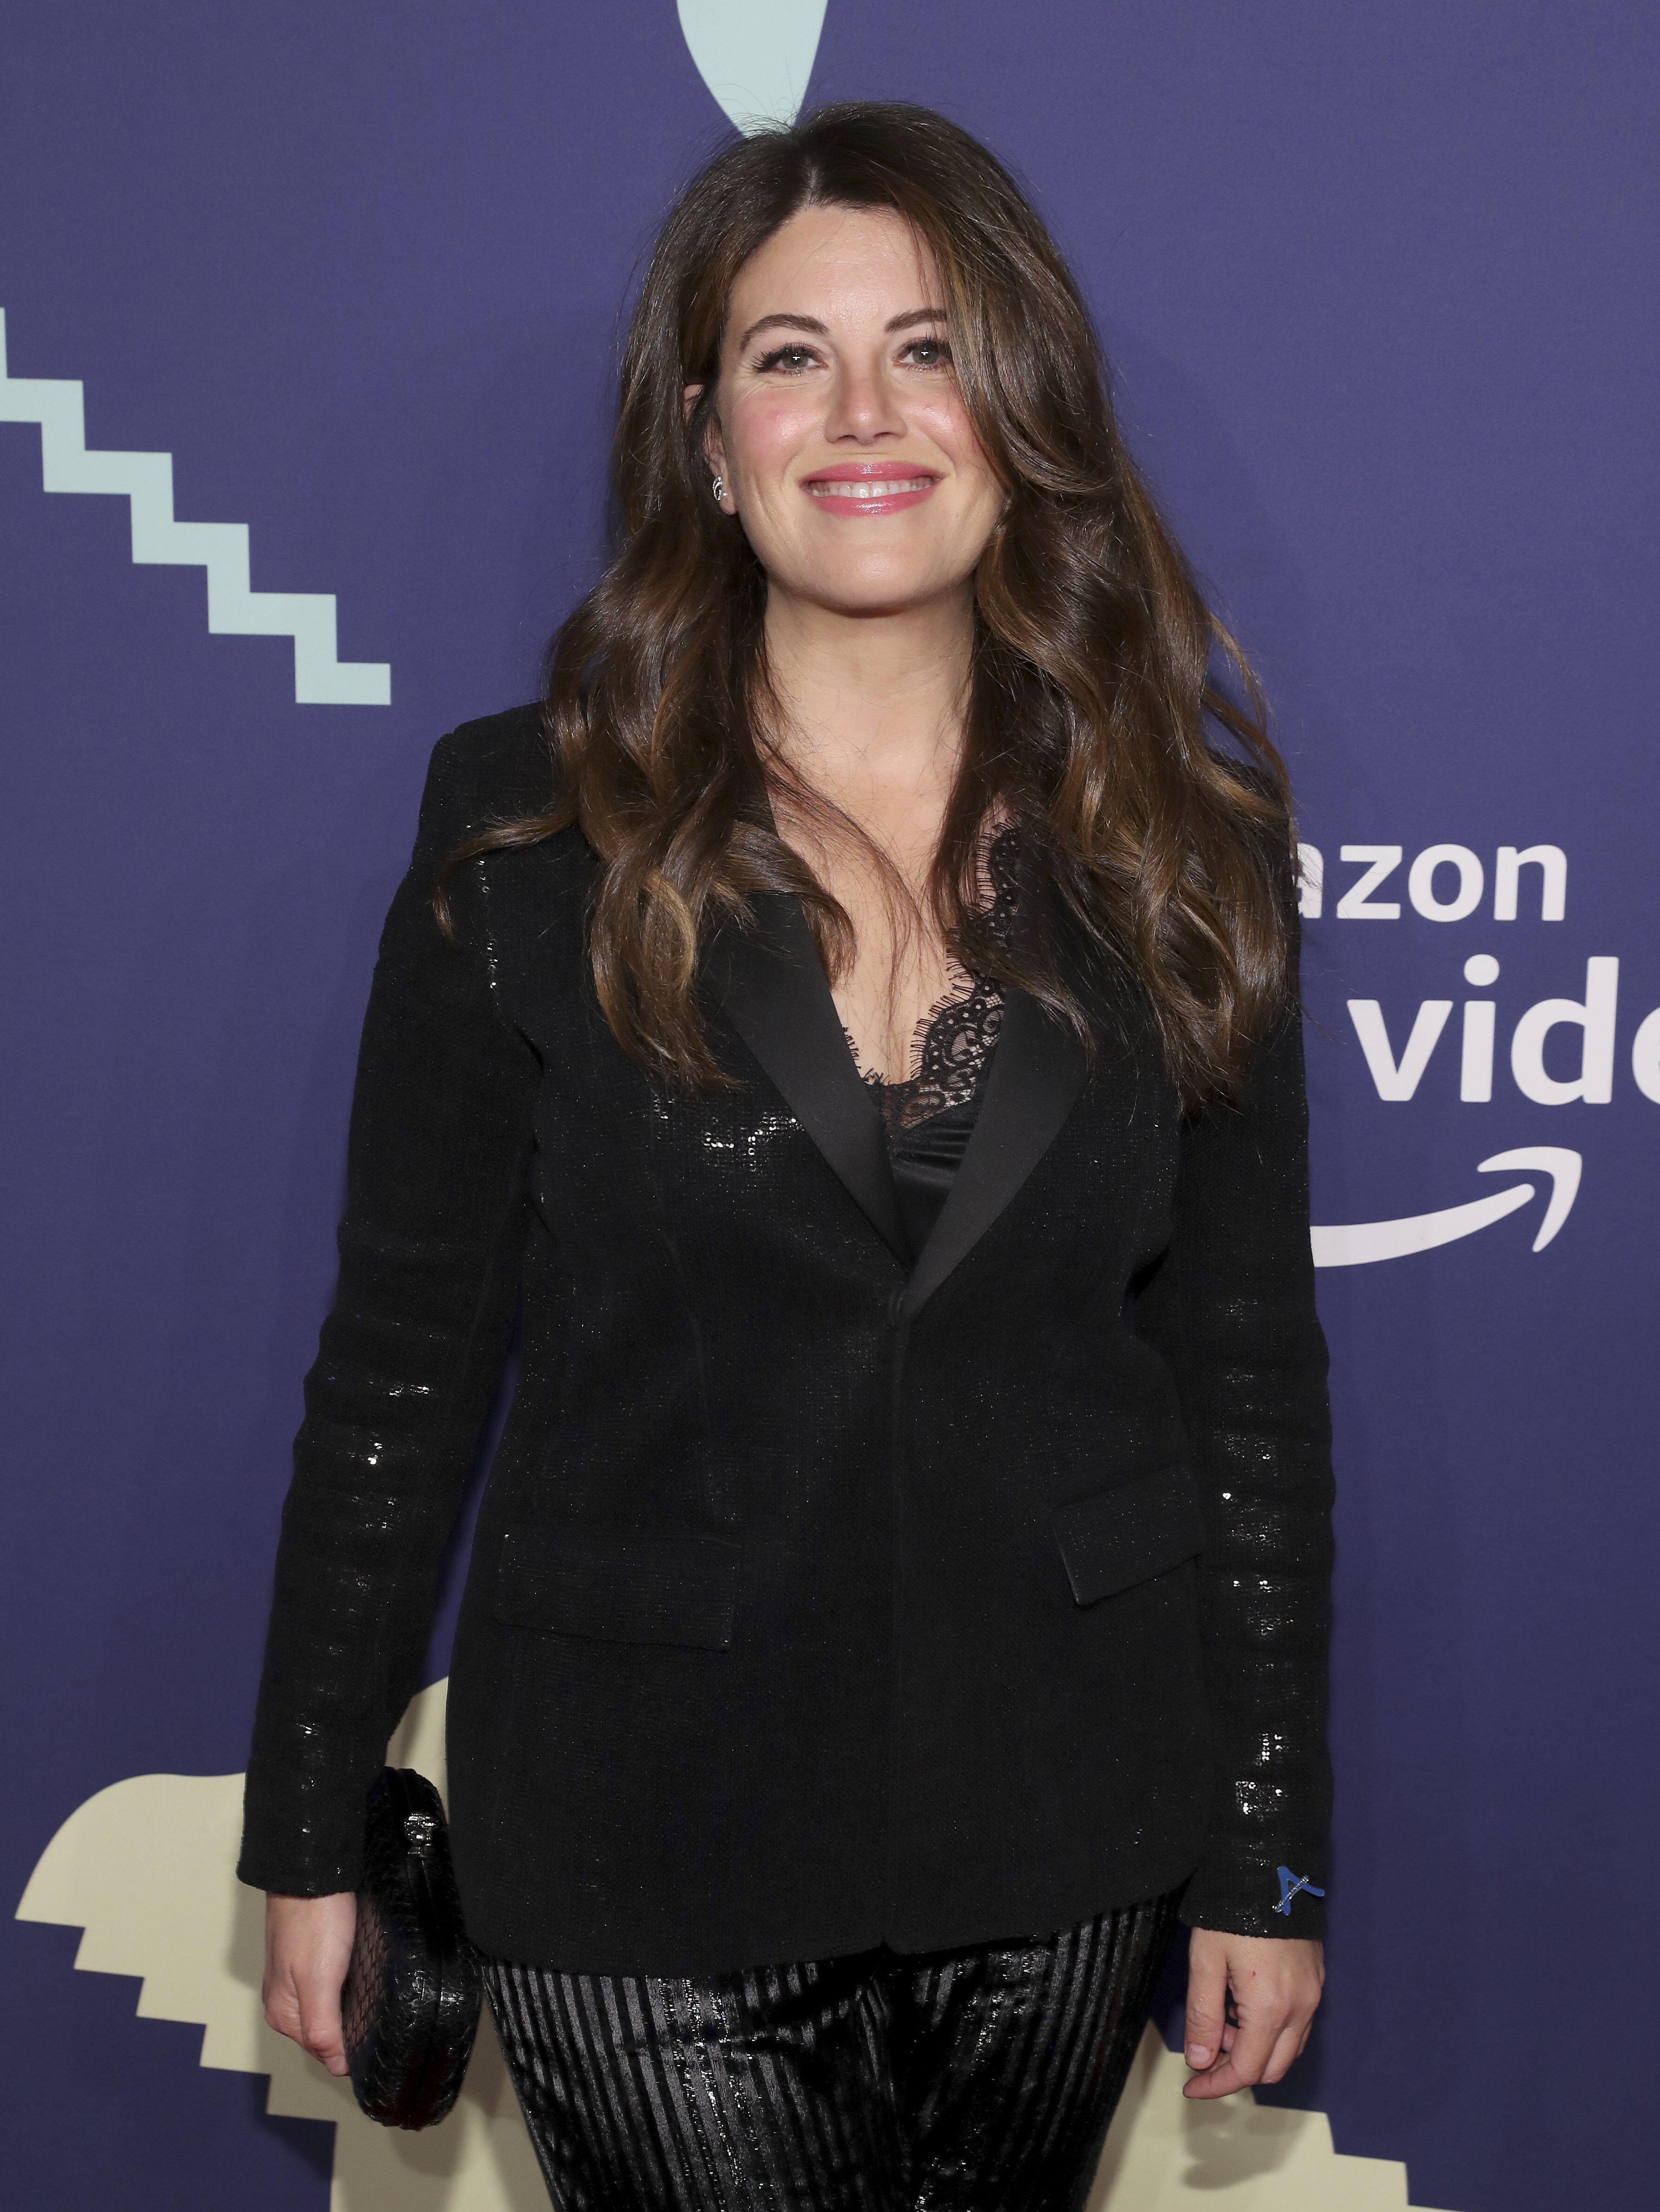 Monica Lewinsky at the 2019 Webby Awards at Cipriani Wall Street on May 13, 2019 in New York City | Source: Getty Images